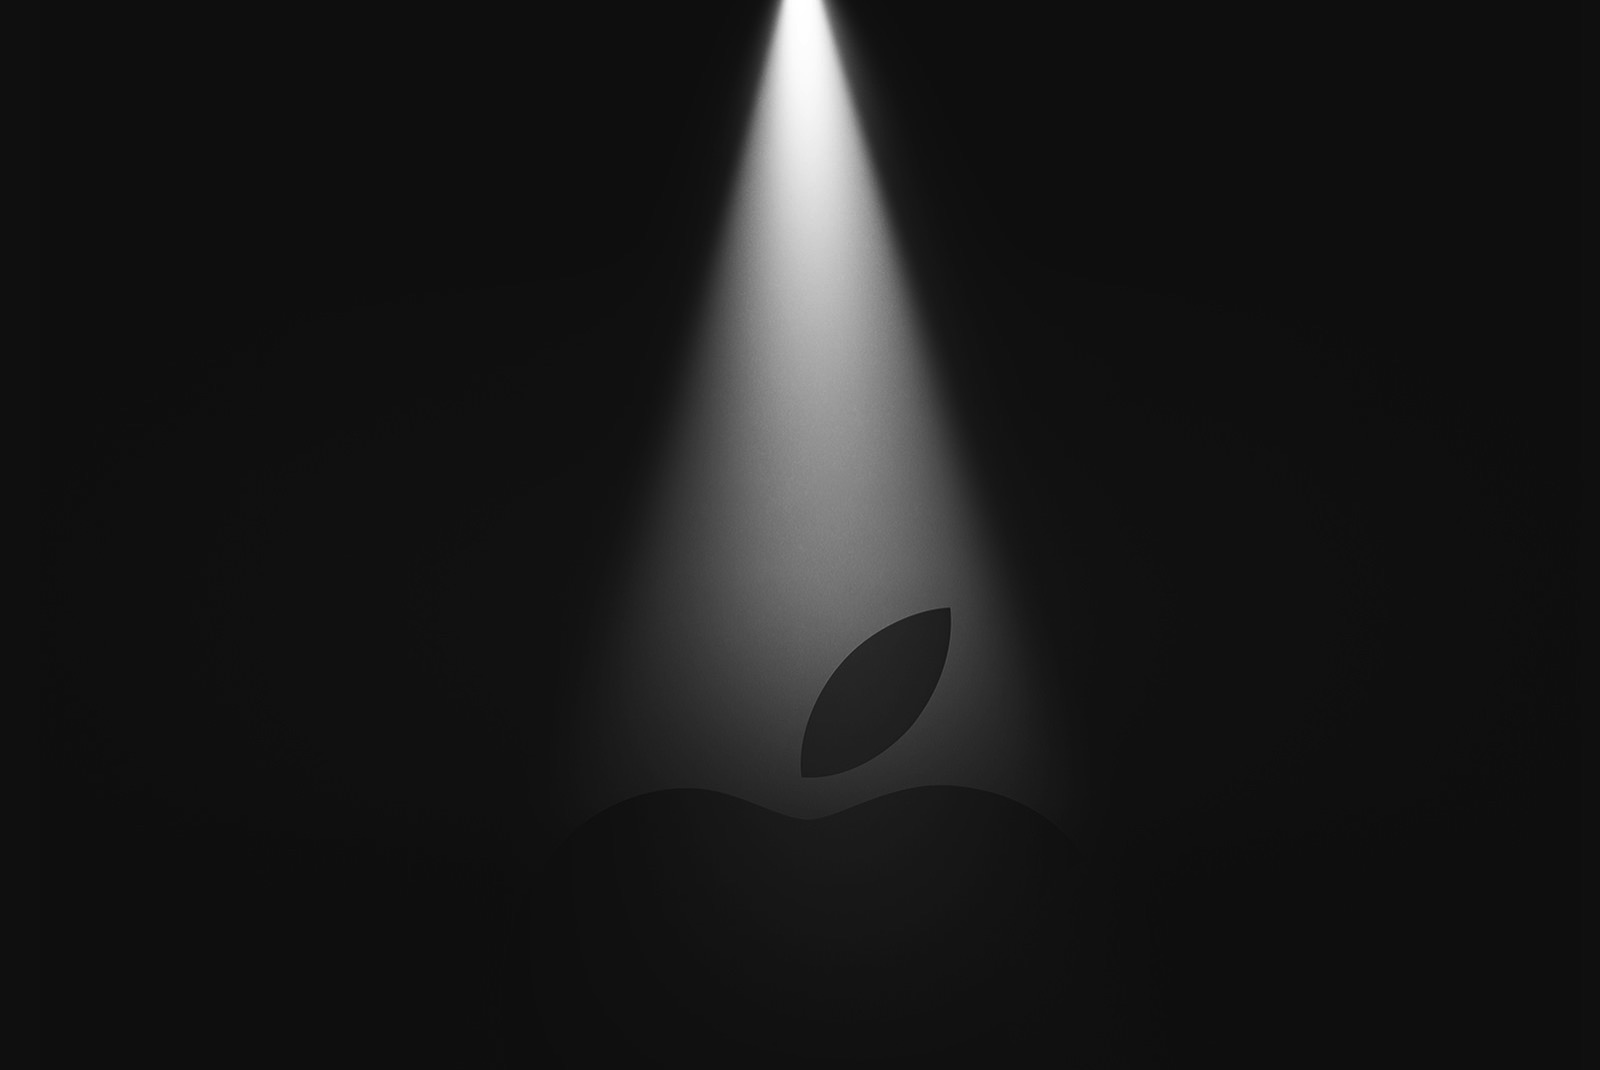 Apple-2019-March-Event.jpg